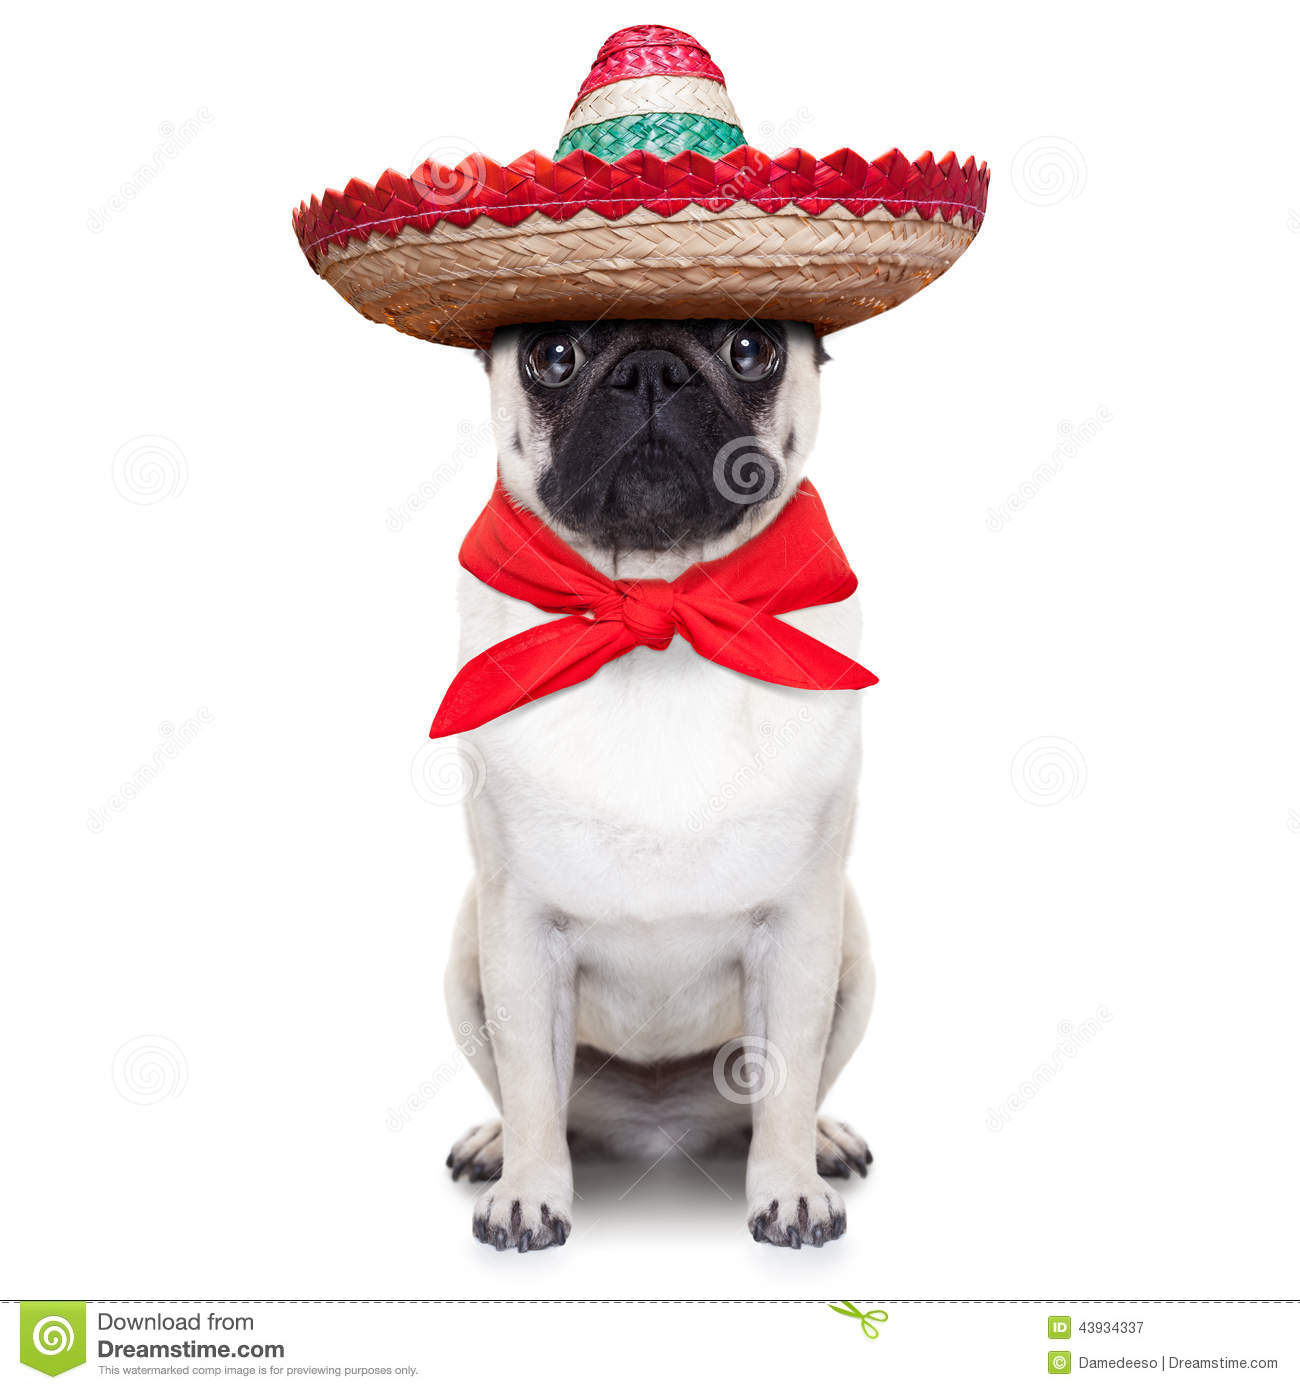 Mexican dog with big sombrero hat and red tie.